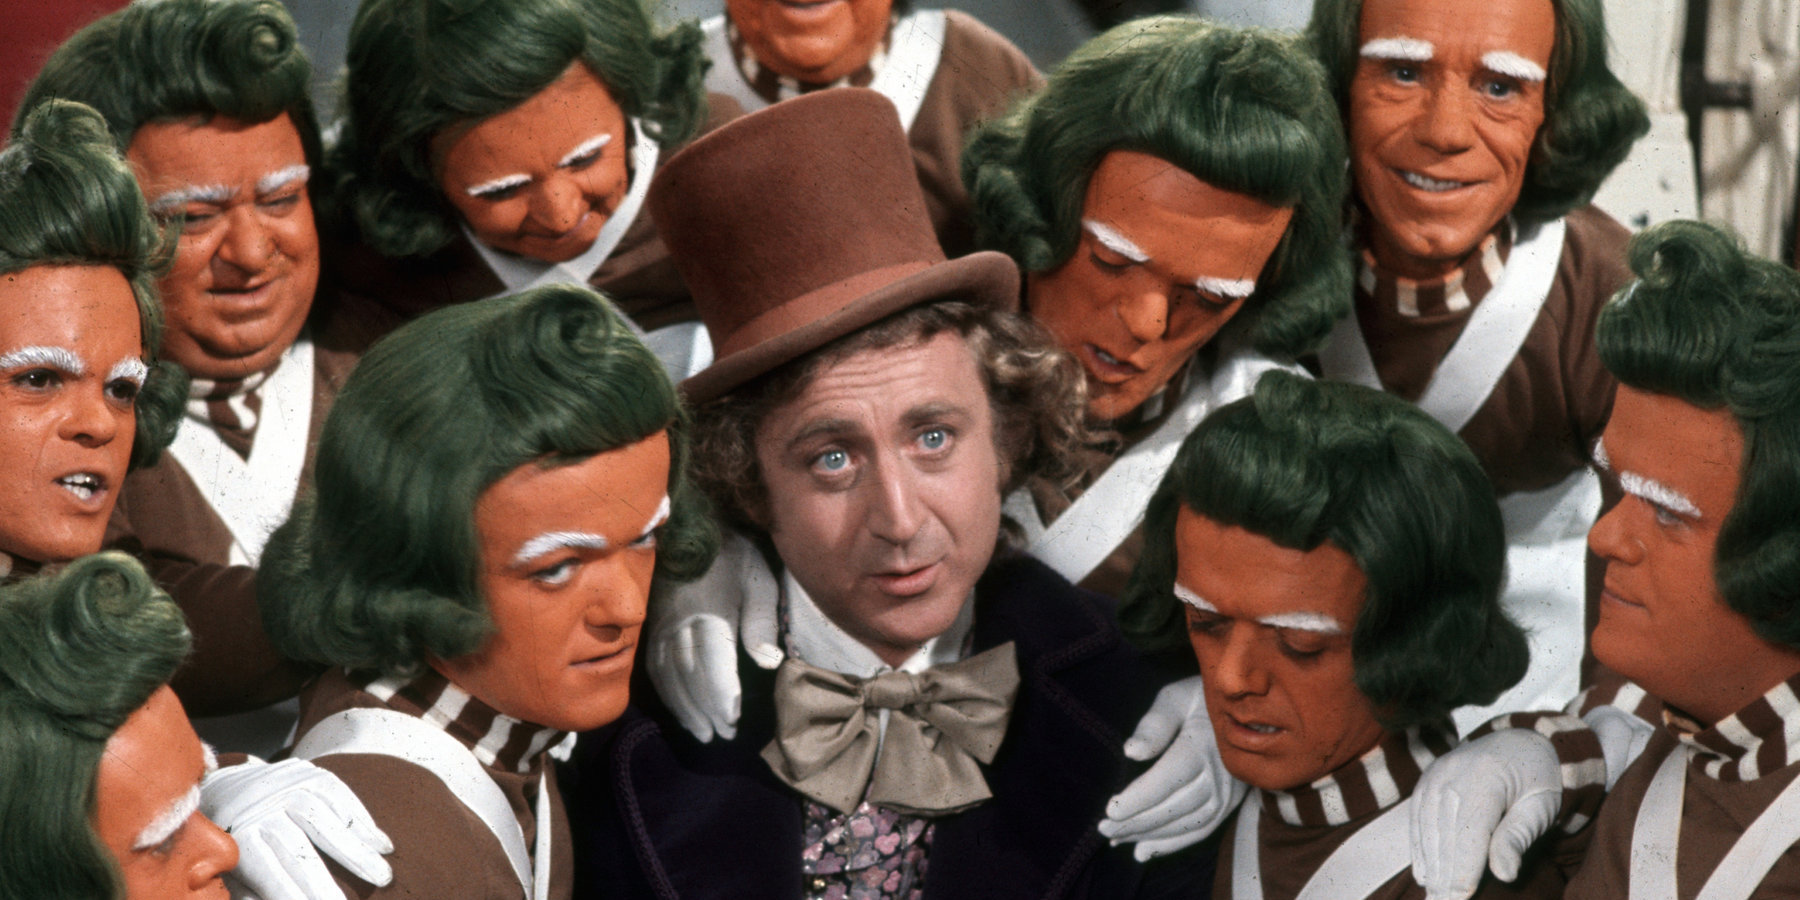 15 things you didn t know about willy wonka and the chocolate fans of the book have always wondered why the film changed the title from charlie and the chocolate factory to willy wonka and the chocolate factory